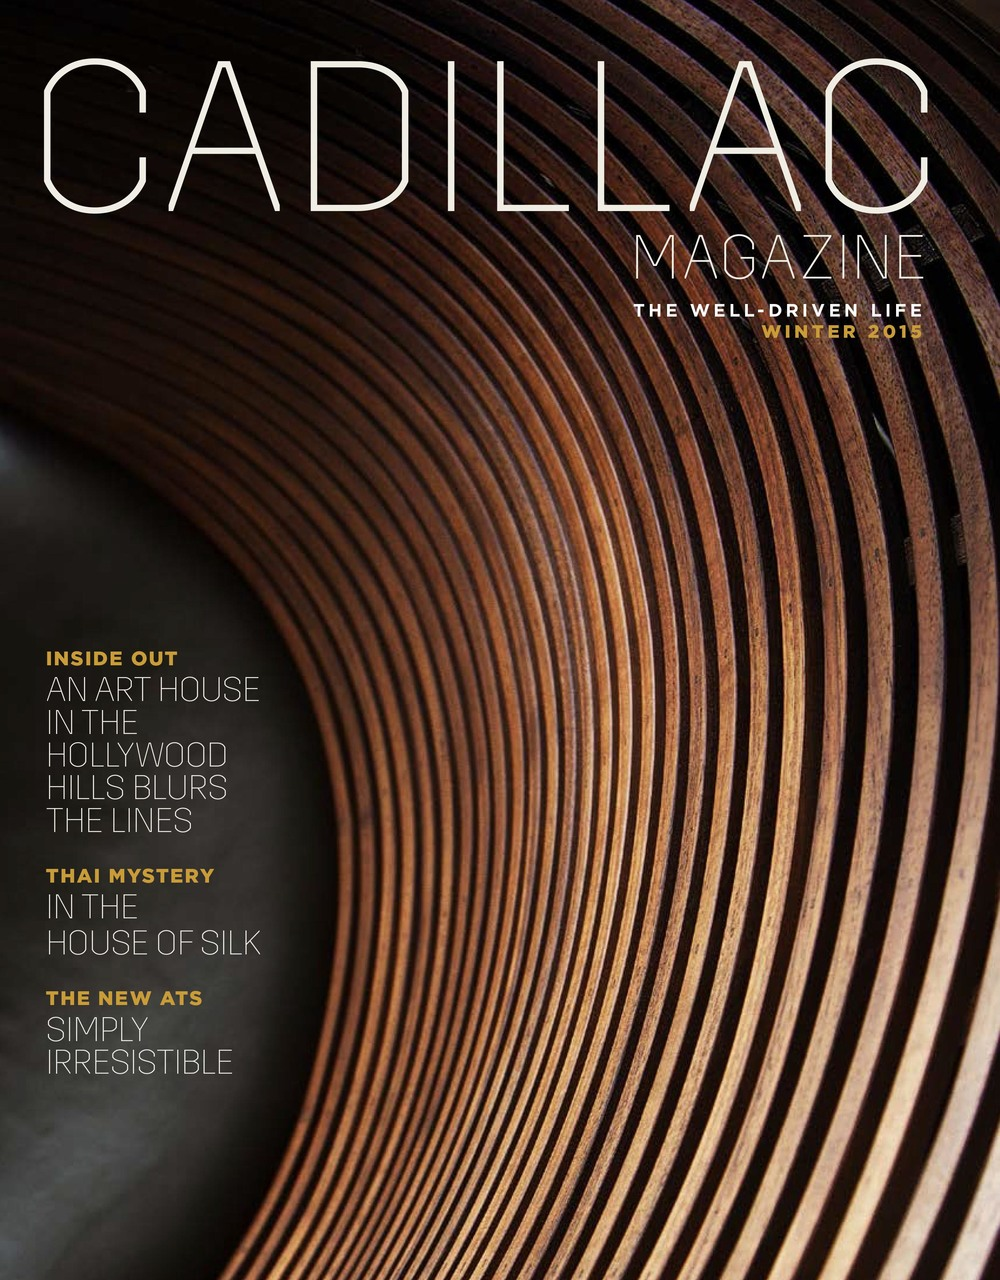 Cadillac Magazine - Winter 2015 (Gallery feature)